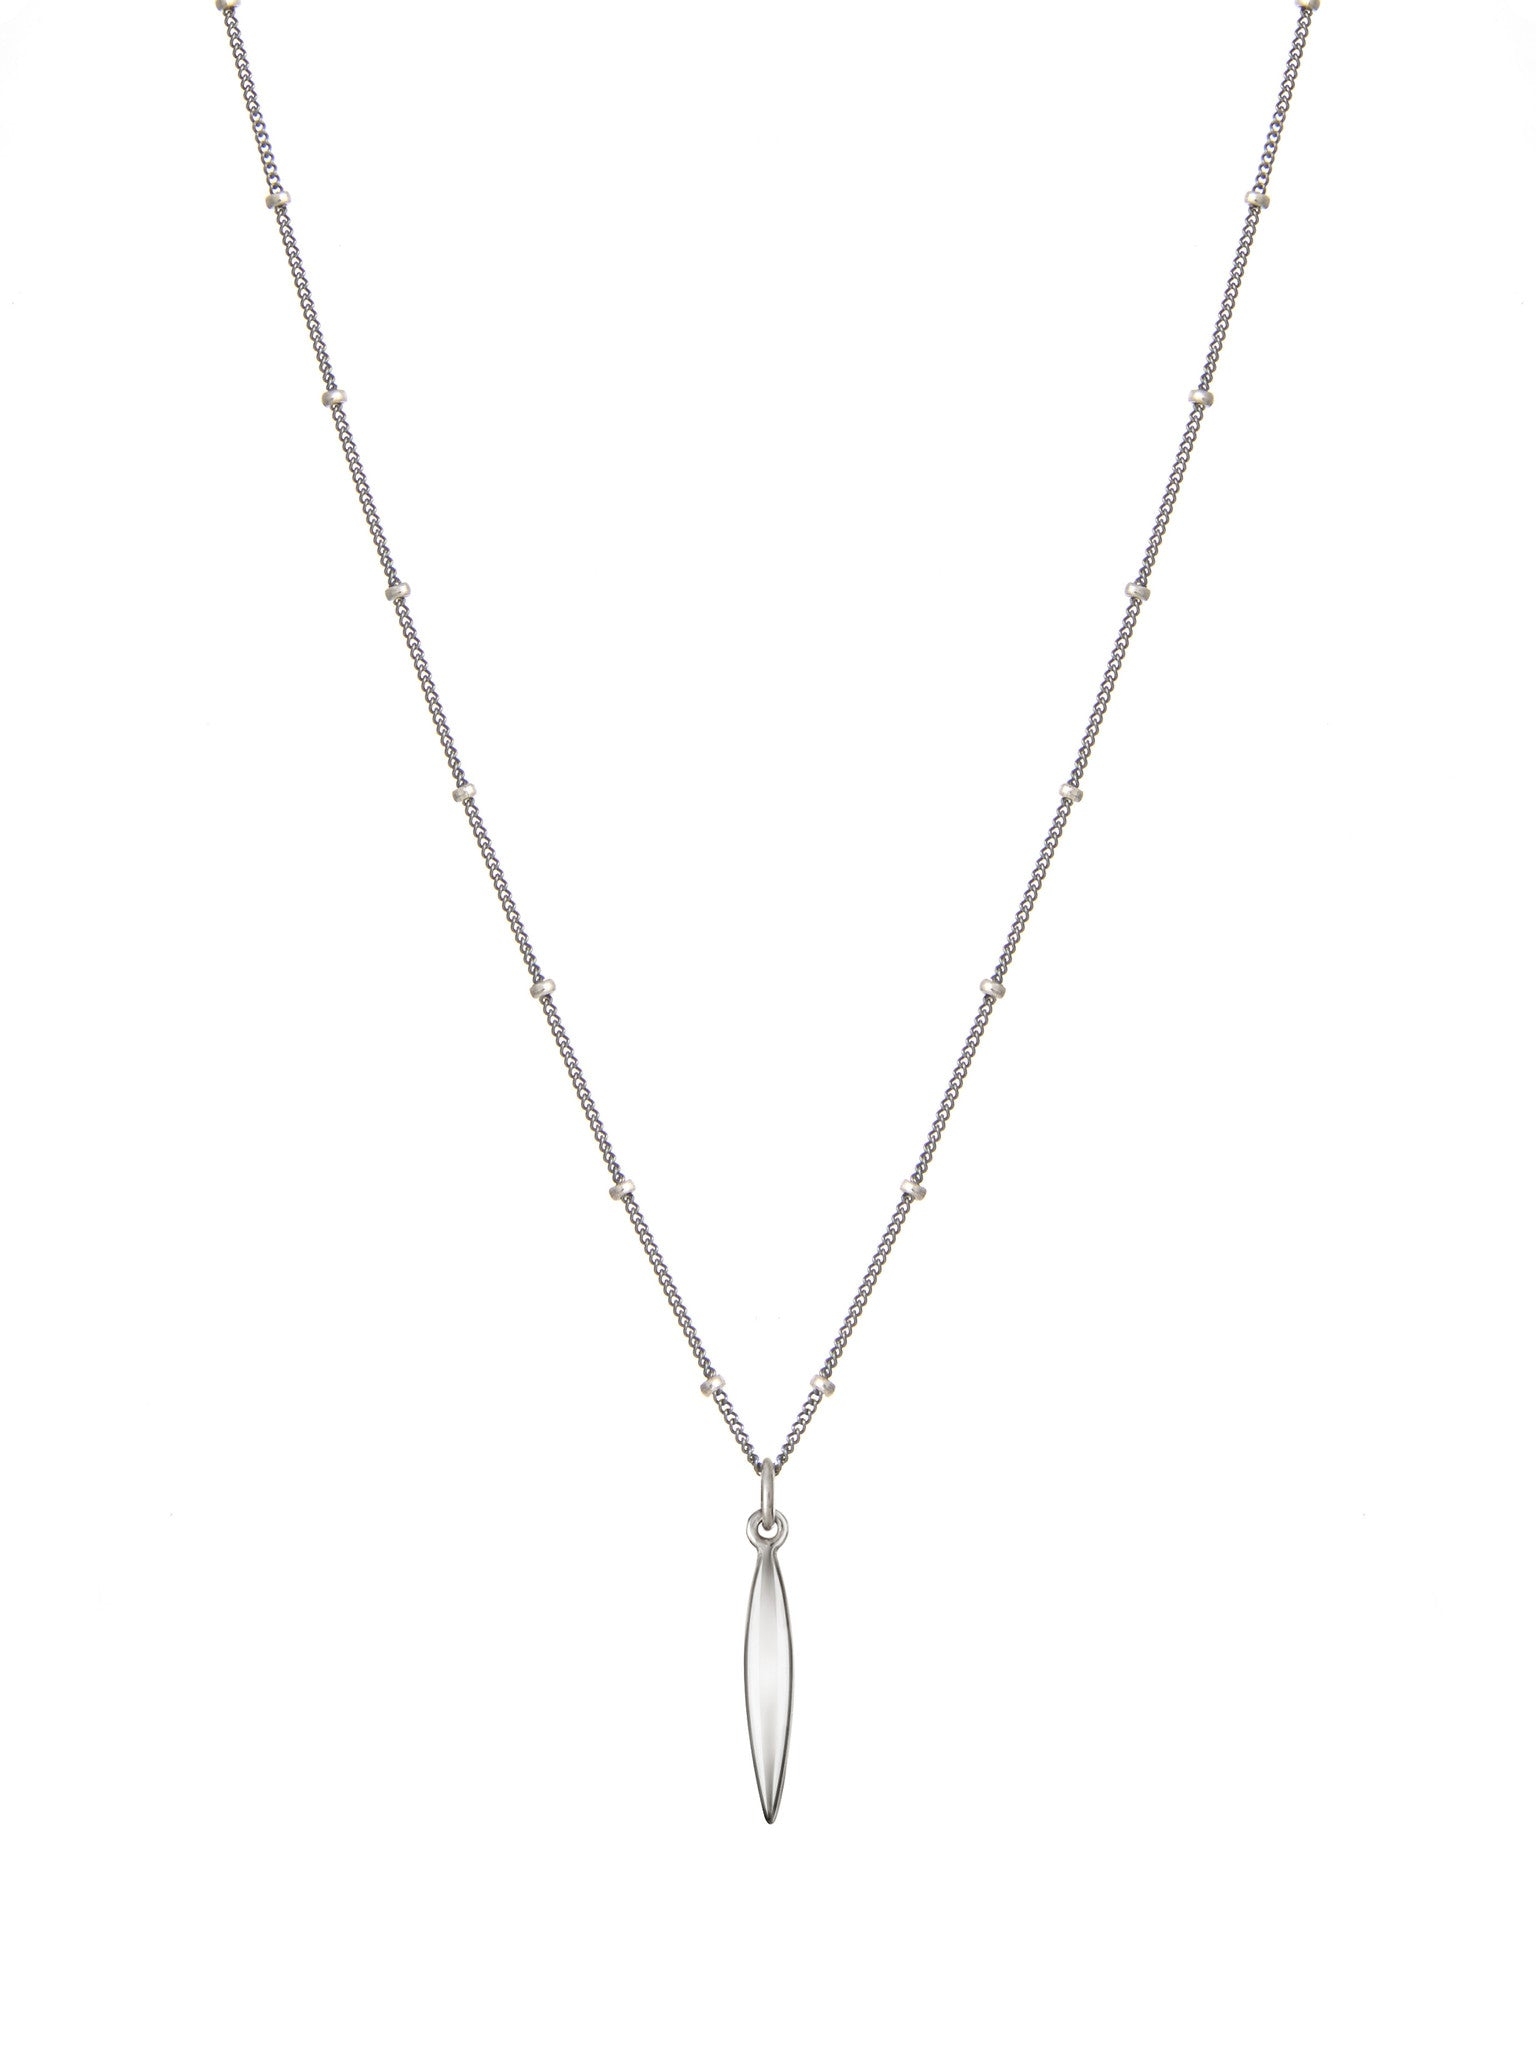 Serena blackened silver necklace